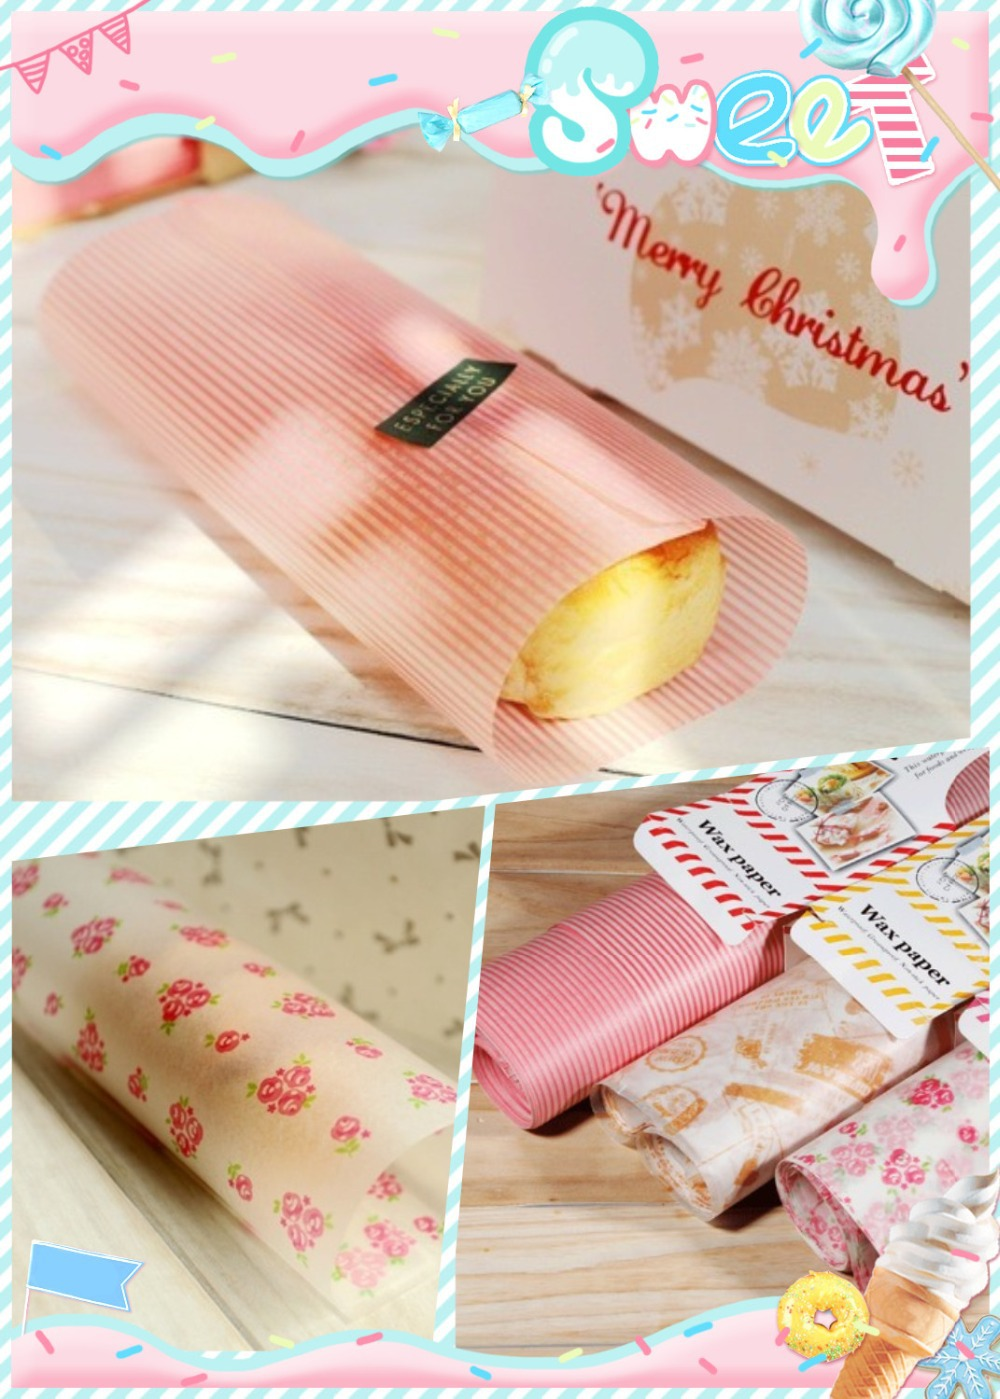 50pcs Pink Stripe Pink Flower Coating Paper For Sandwich Packaging Food Oil Paper Wax Paper Baking Oil Paper 21.8x25cm(China (Mainland))